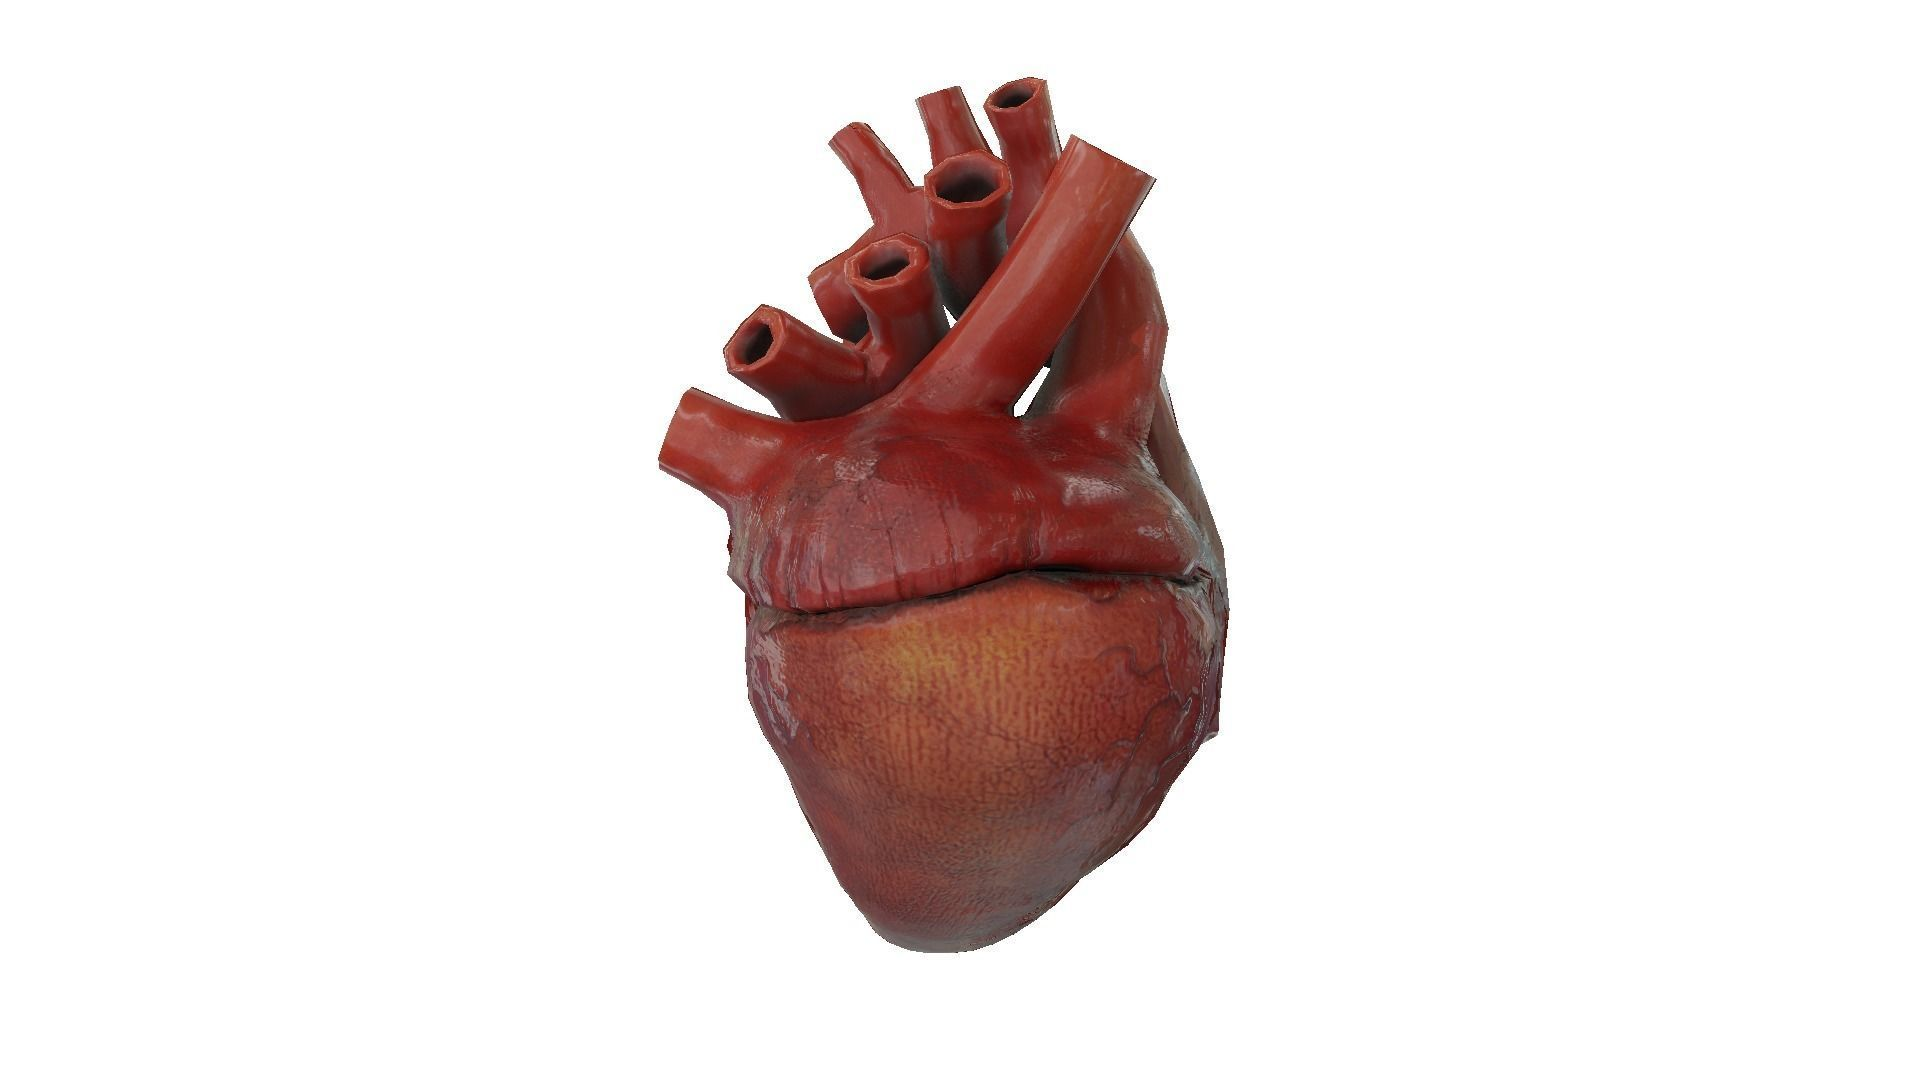 Rigged and Animated Low Poly Human Heart